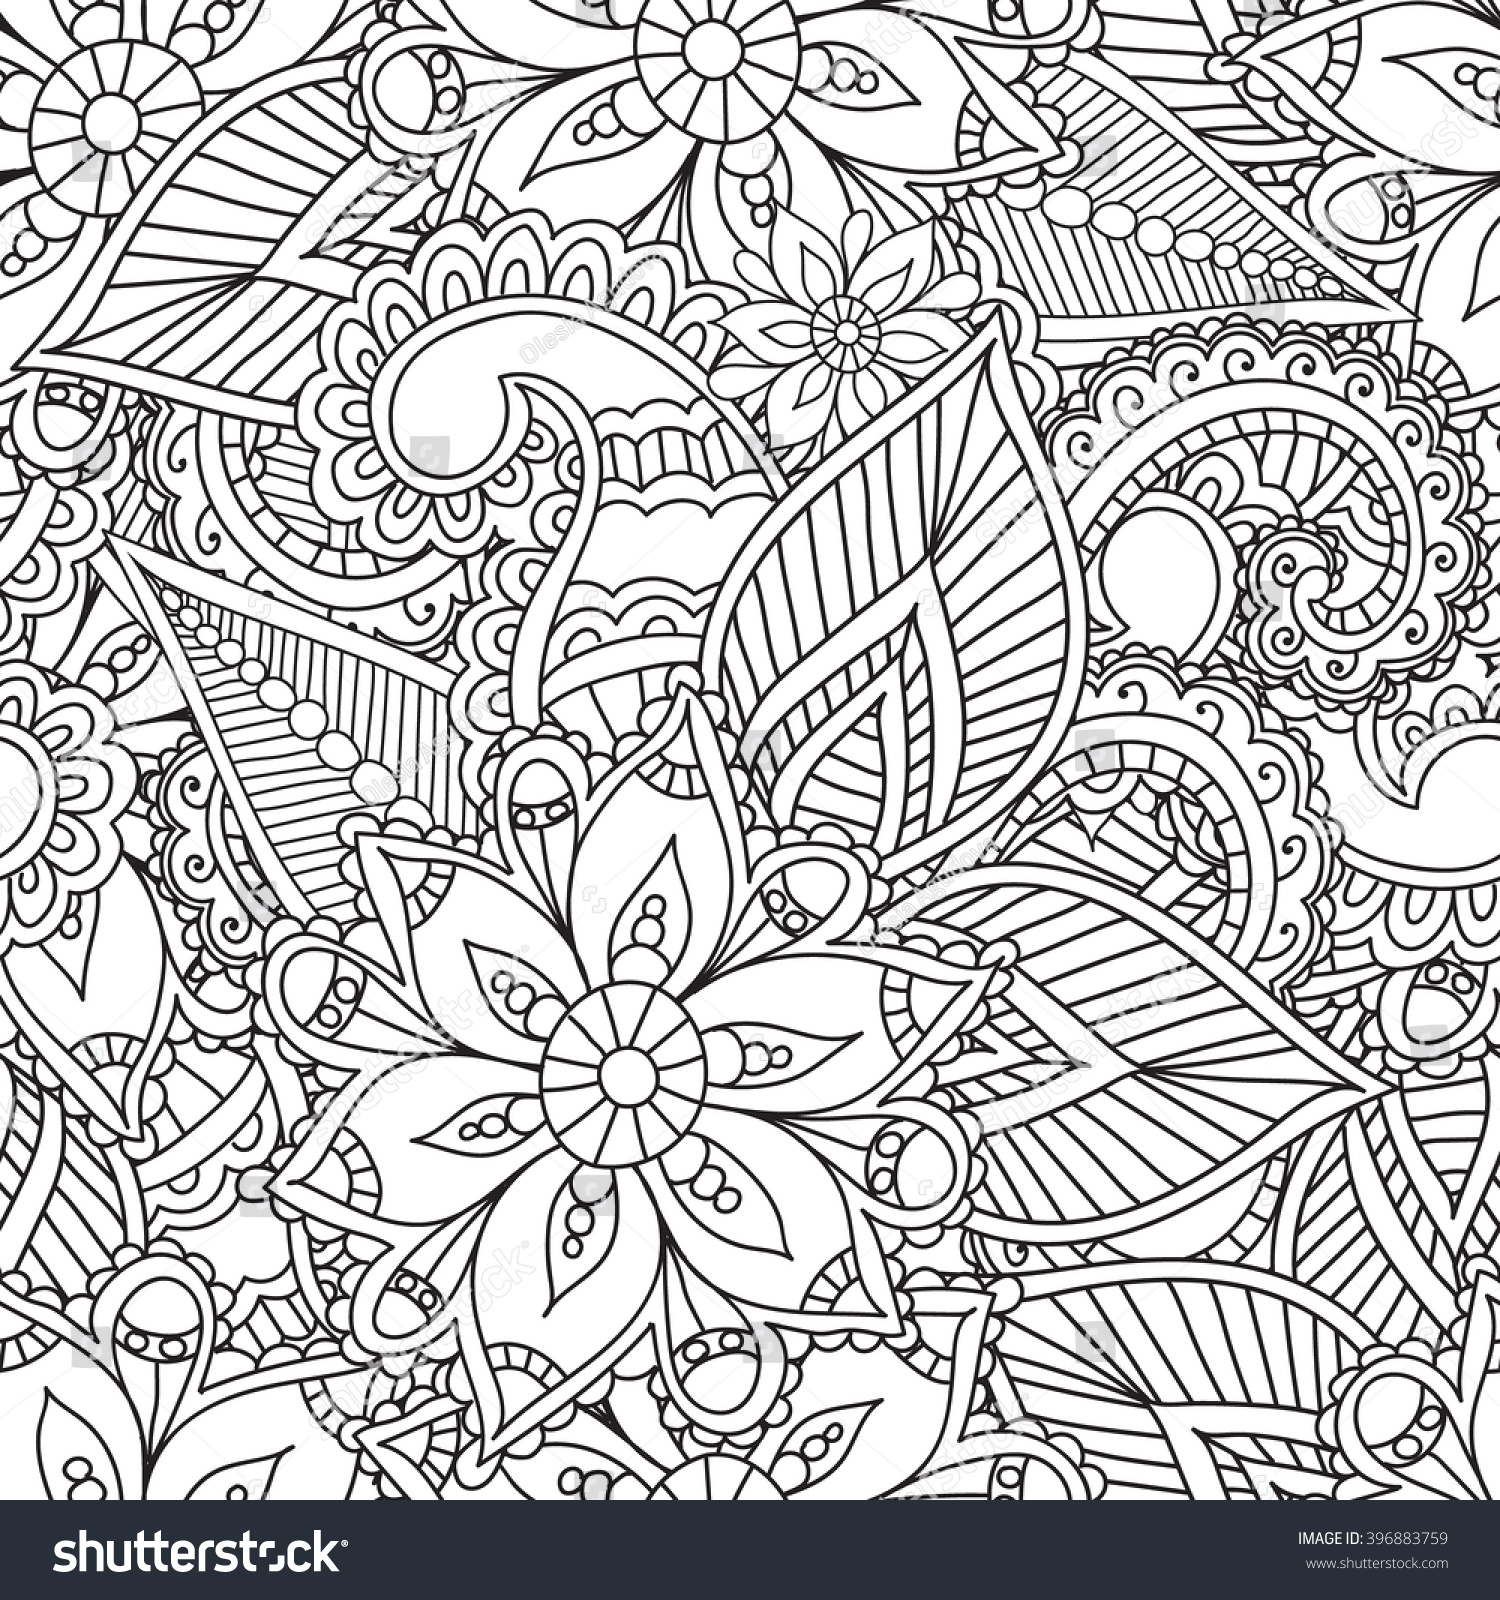 Coloring pages adultsseamless patternhenna mehendi doodles for Henna coloring pages